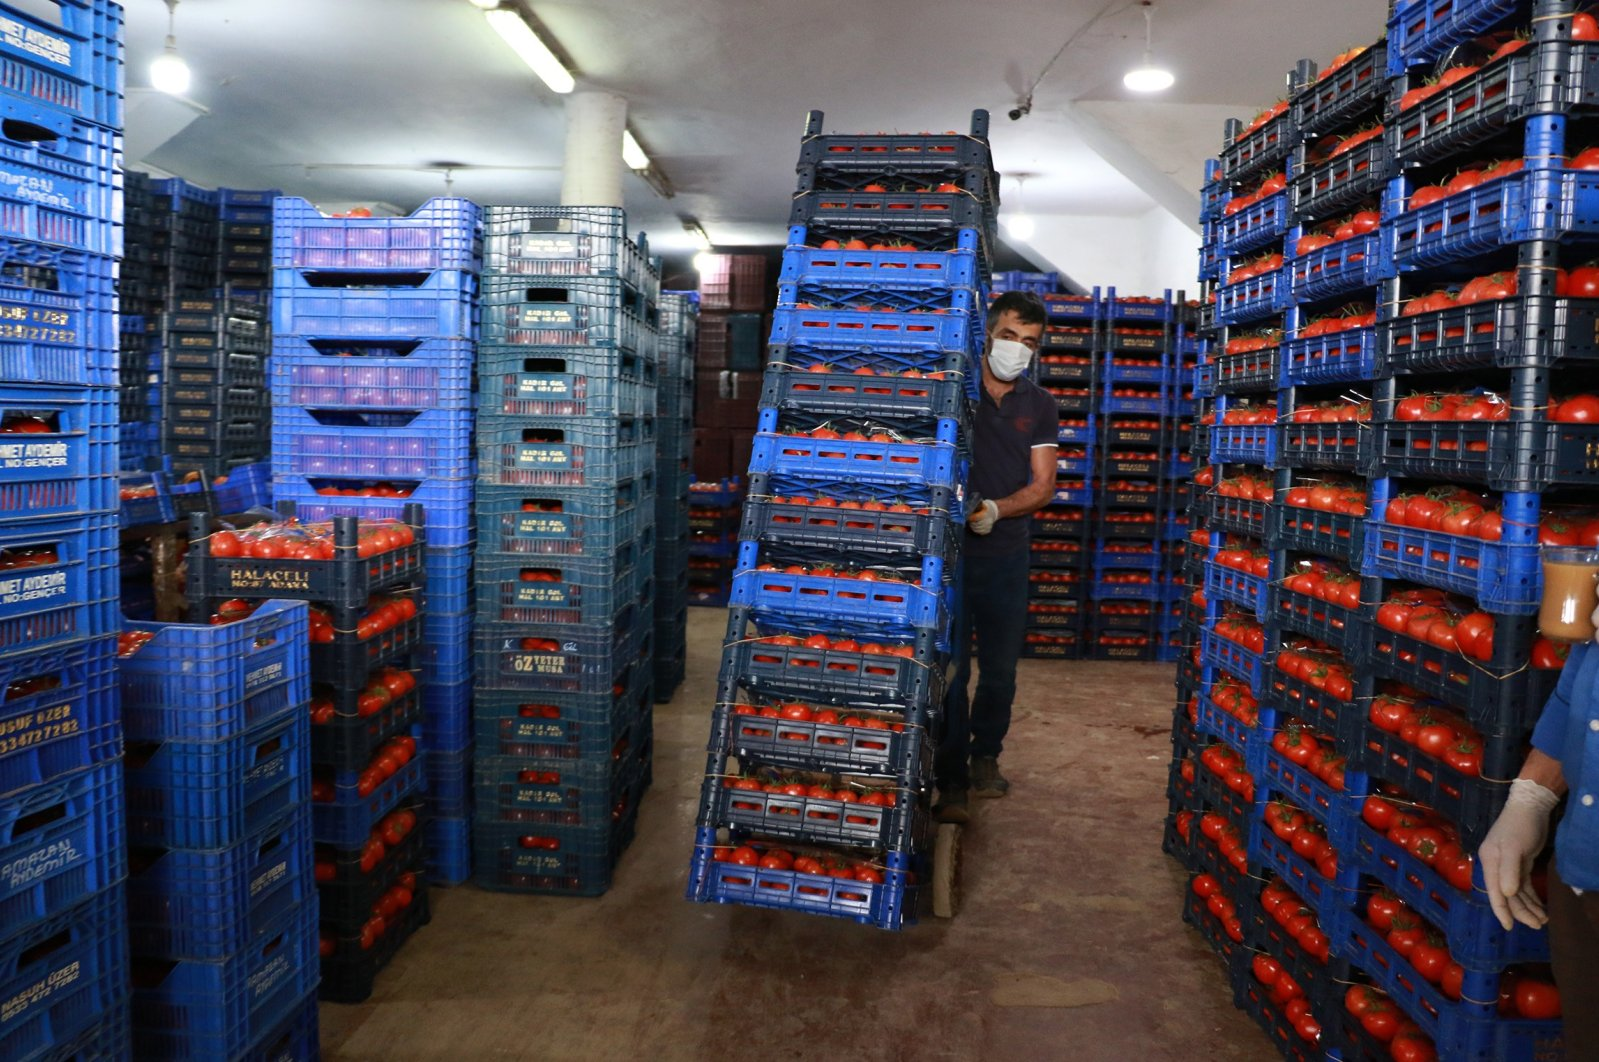 Workers load tomatoes in Turkey's southern province of Antalya, April 9, 2020. (İHA Photo)